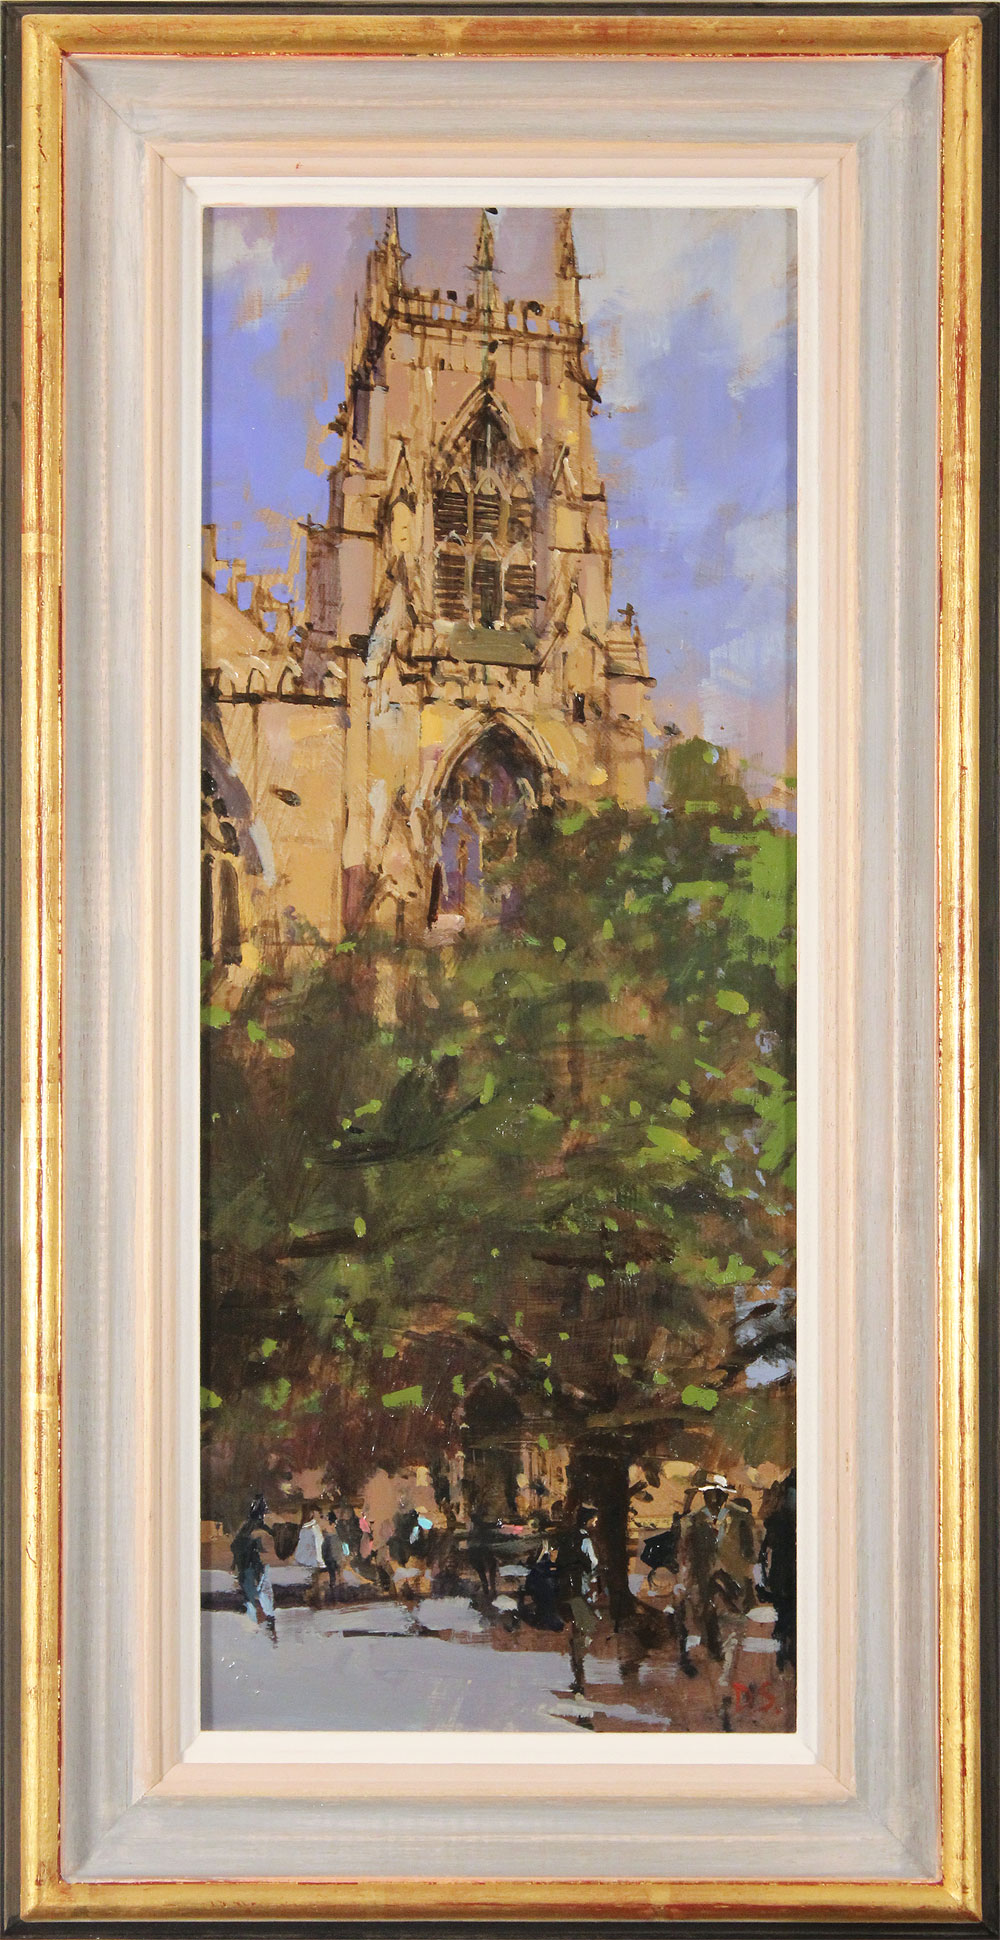 David Sawyer, RBA, Original oil painting on panel, The Panama Hat, Spring Afternoon, York Minster, click to enlarge